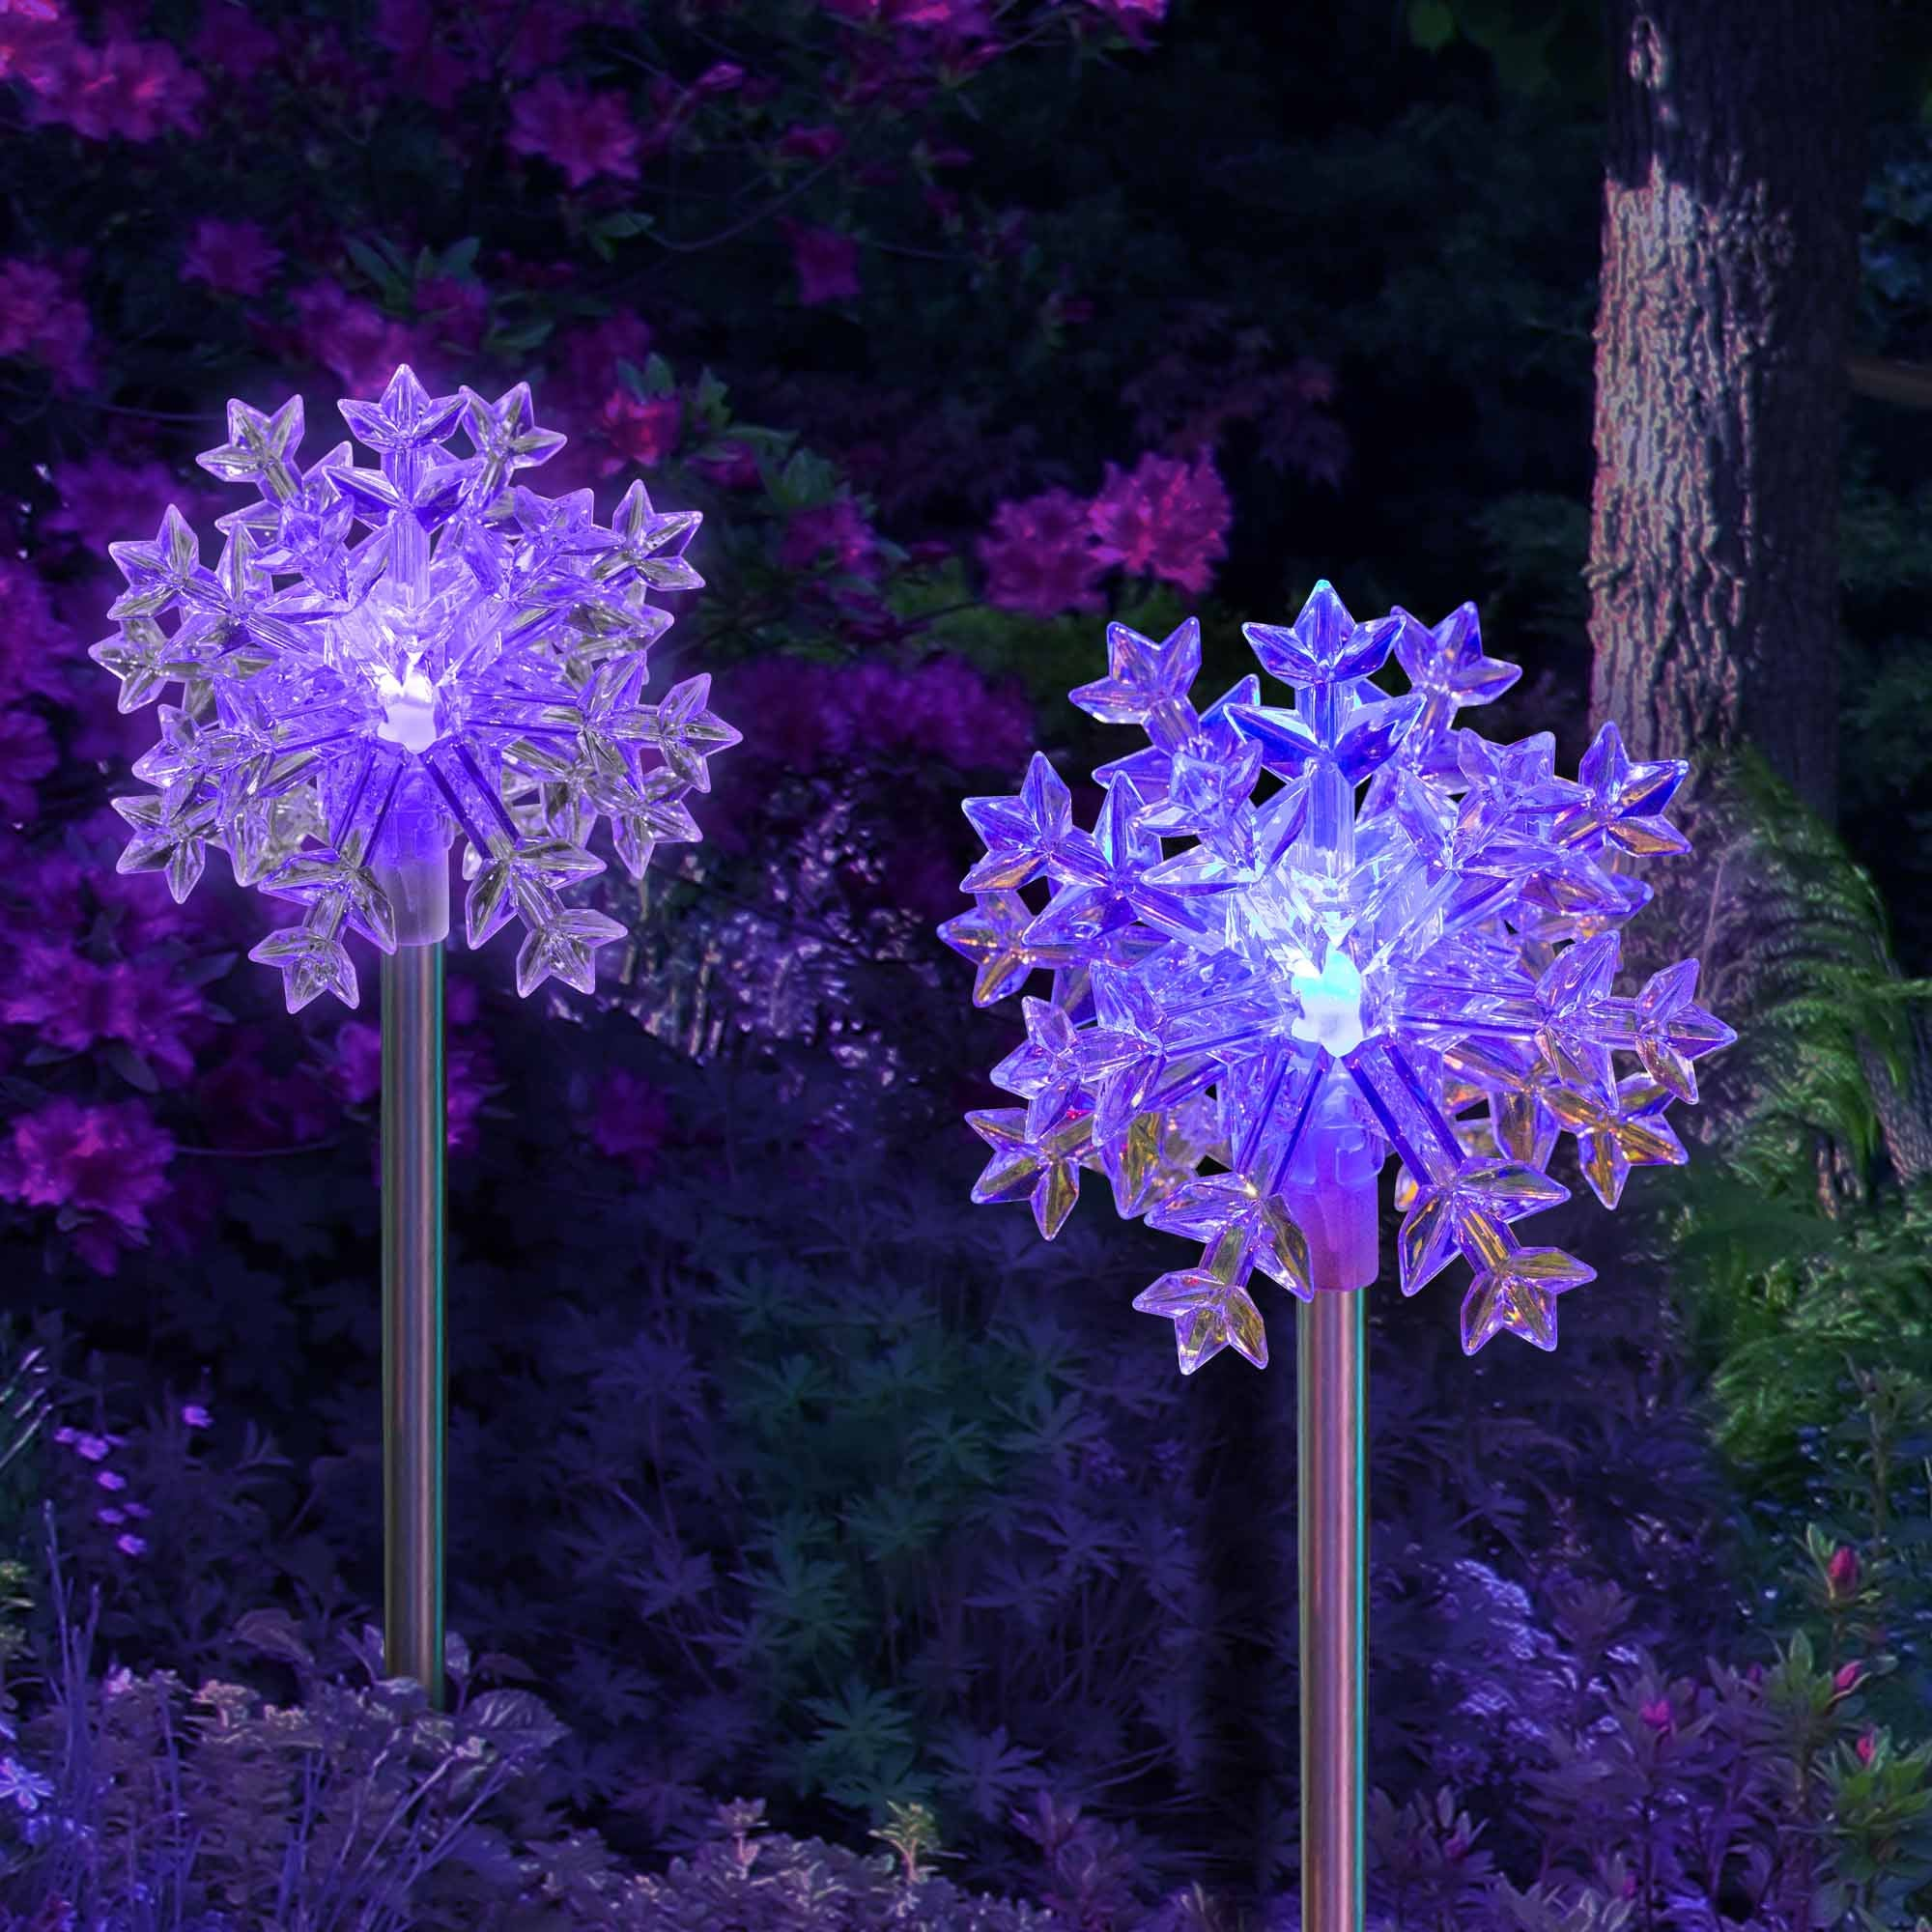 Solar outdoor christmas lights color changing snowflake my dream solar outdoor christmas lights color changing solar snowflakes stakes 2 pack landscape pathway lighting aloadofball Gallery